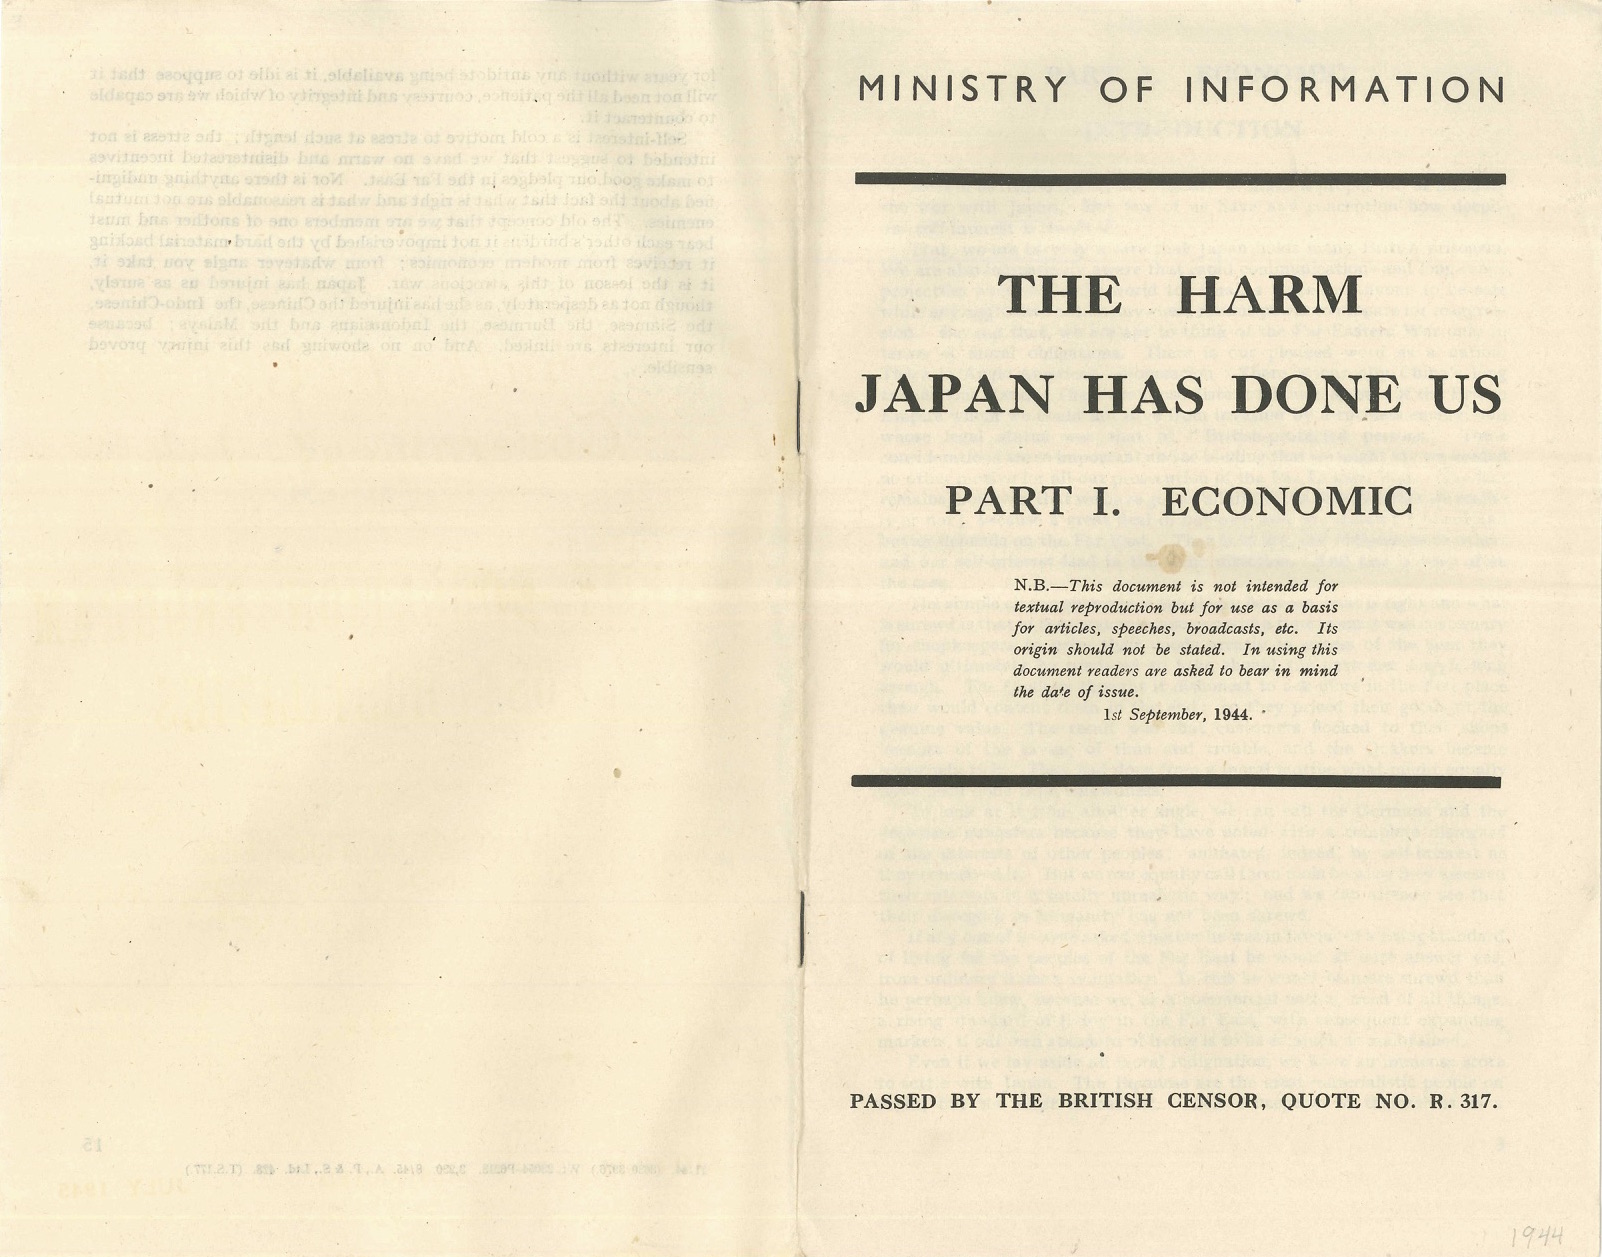 1 The Harm that Japan has done to us Part 1 Economic.jpg